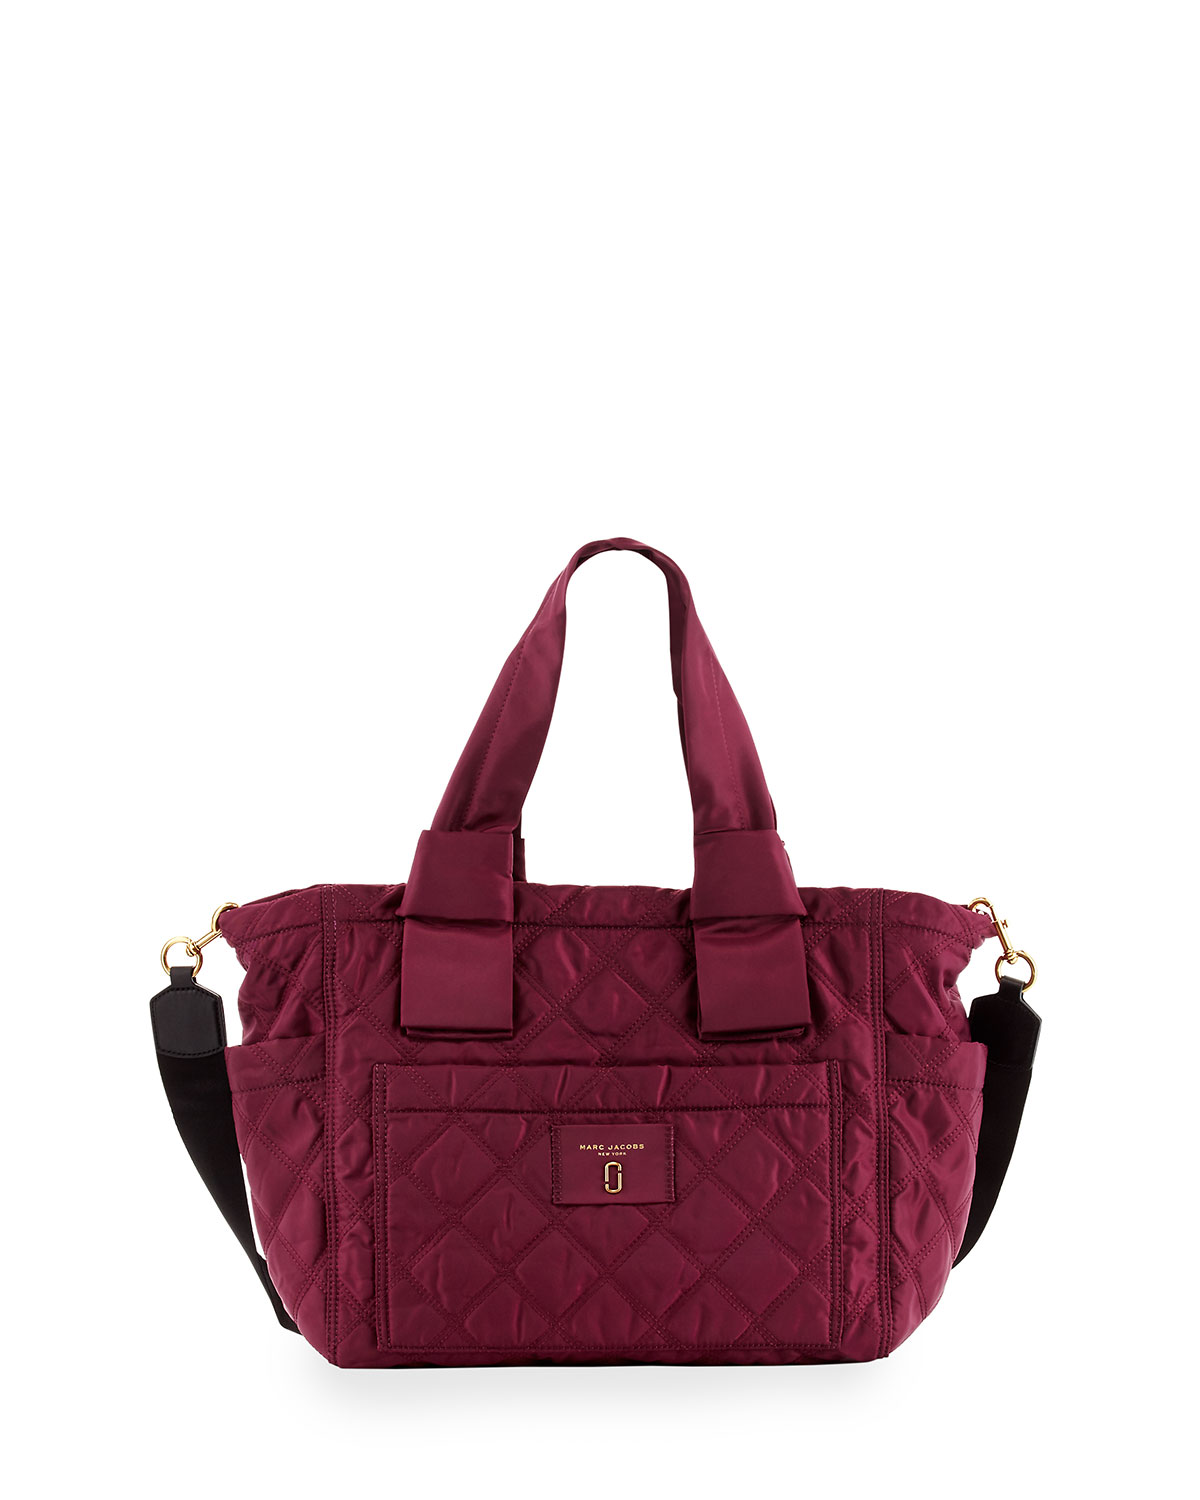 542920570c2f Marc Jacobs Quilted Nylon Baby Bag